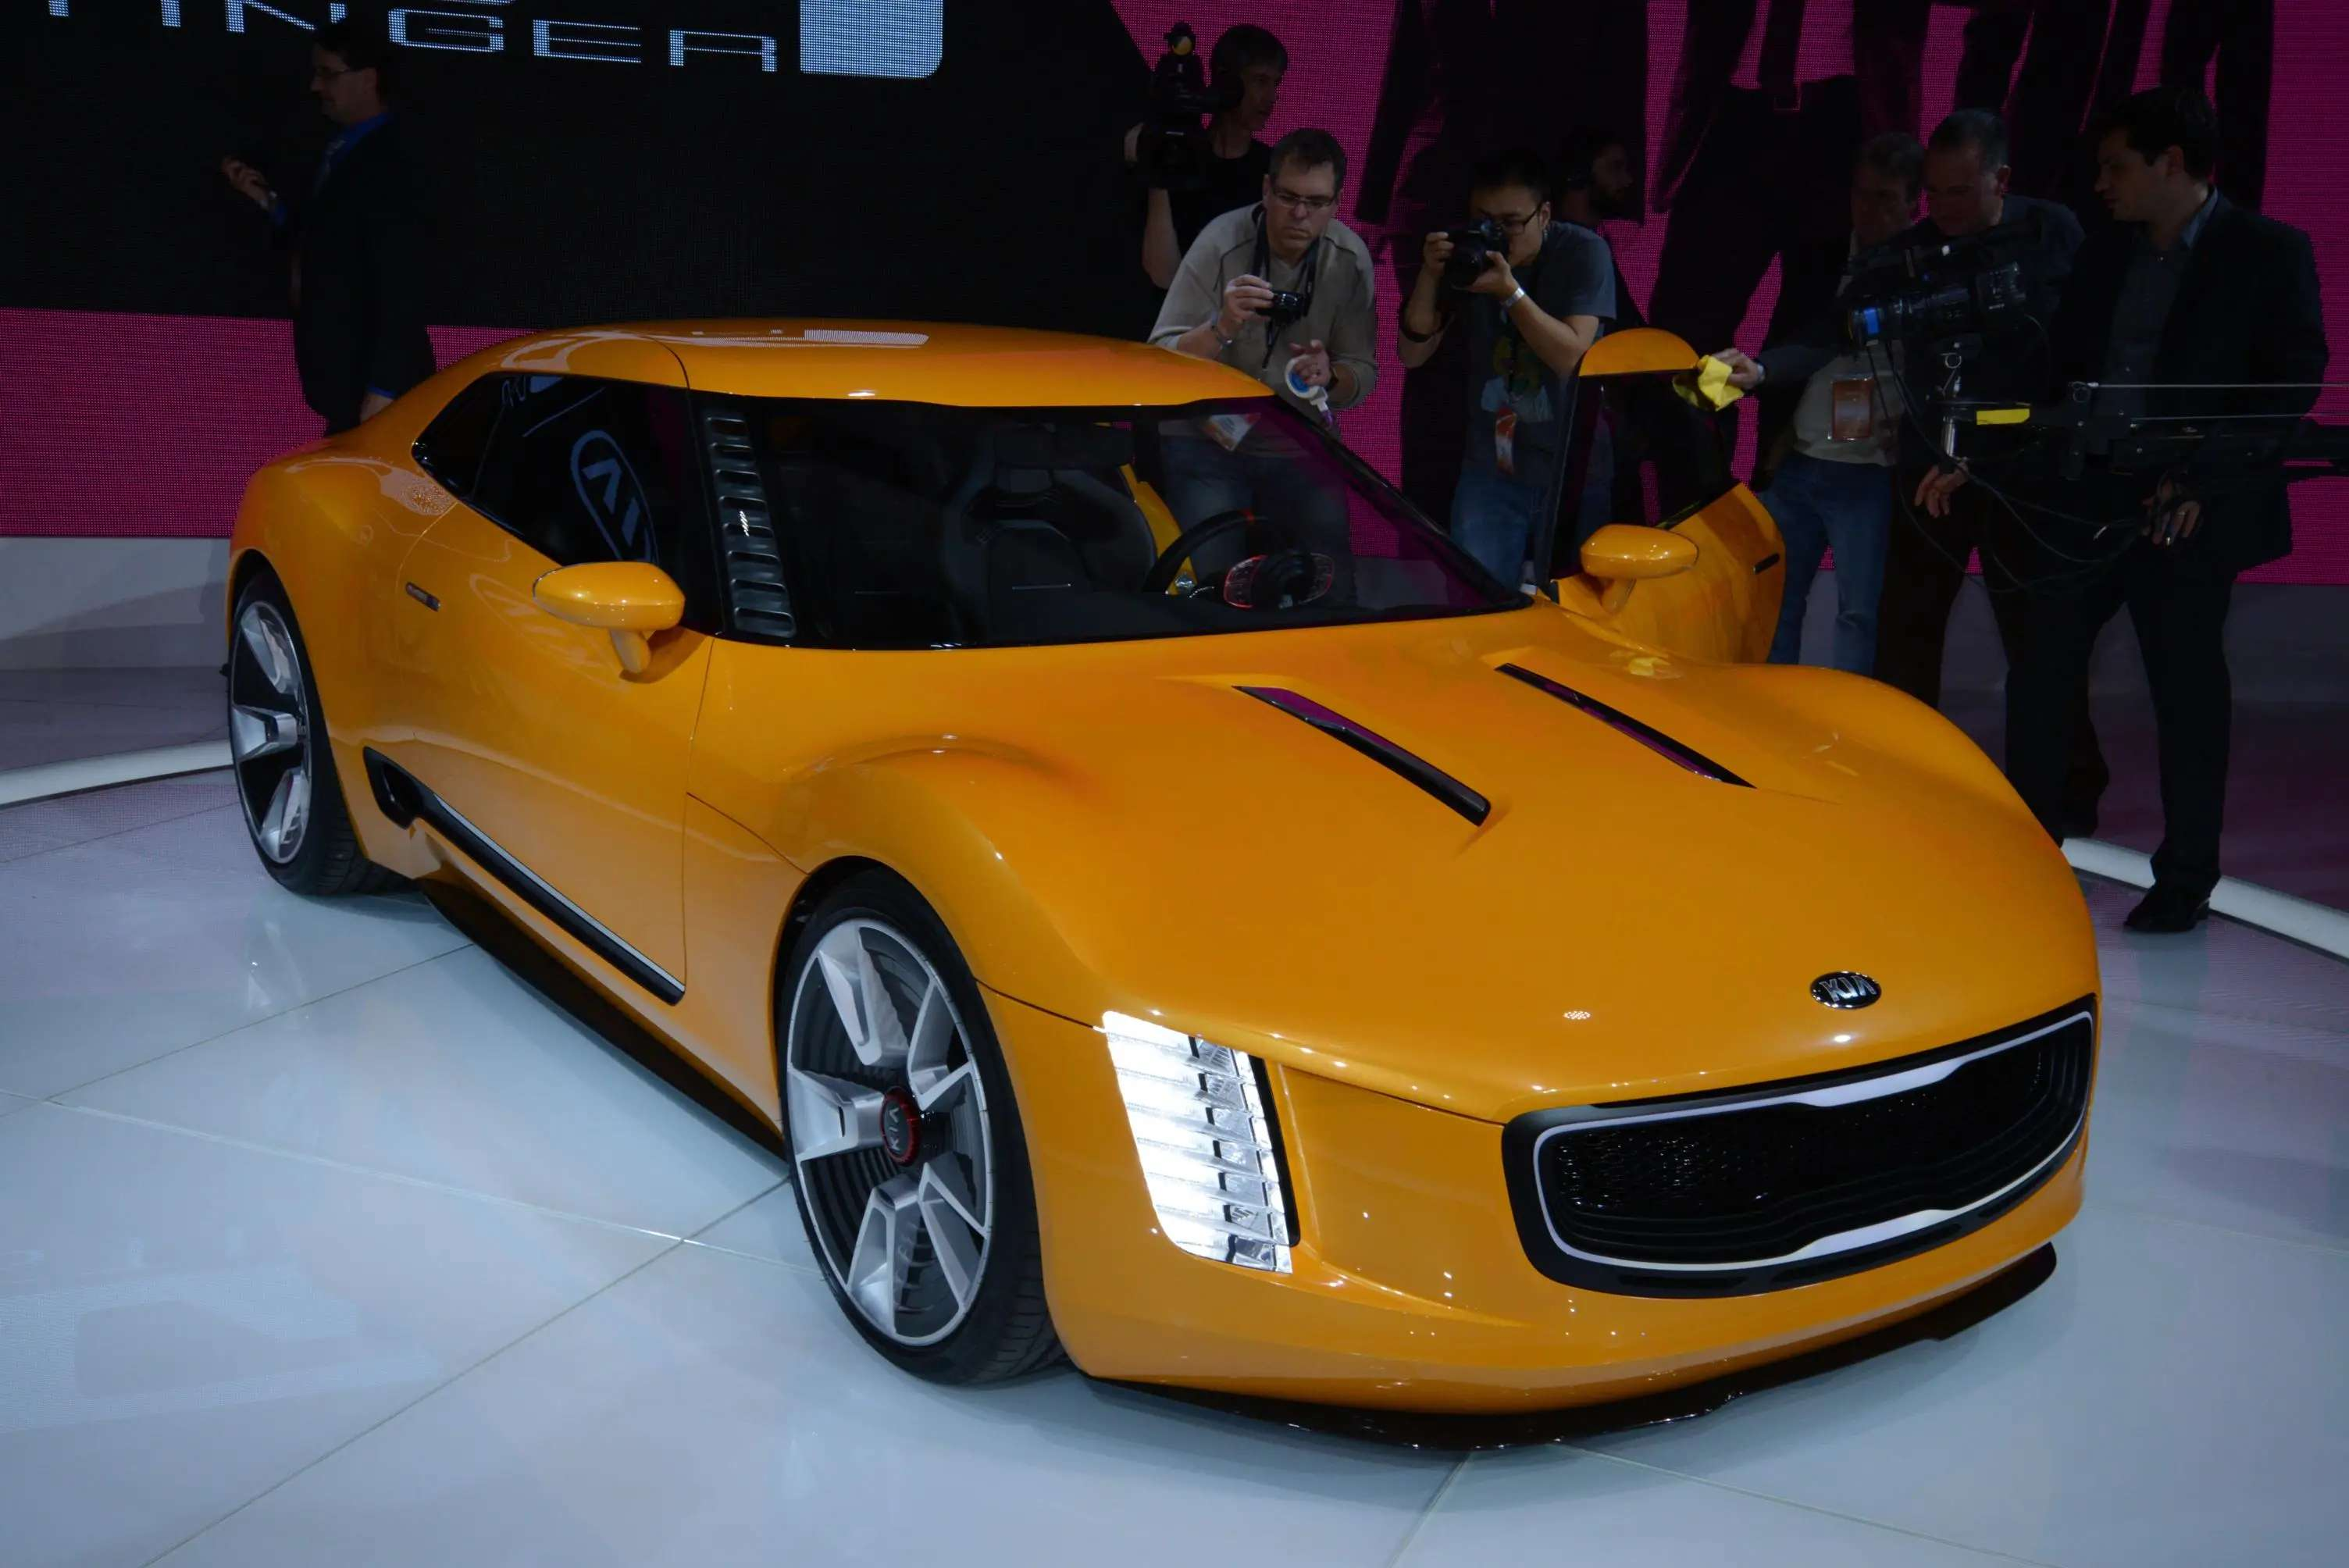 Kia's GT4 Stinger real-wheel drive concept is a far cry from the low-end models the brand is best known for. It's turbocharged engine produces 315 horsepower, paired with a six-speed manual transmission. And it's got the coolest dashboard we've ever seen.